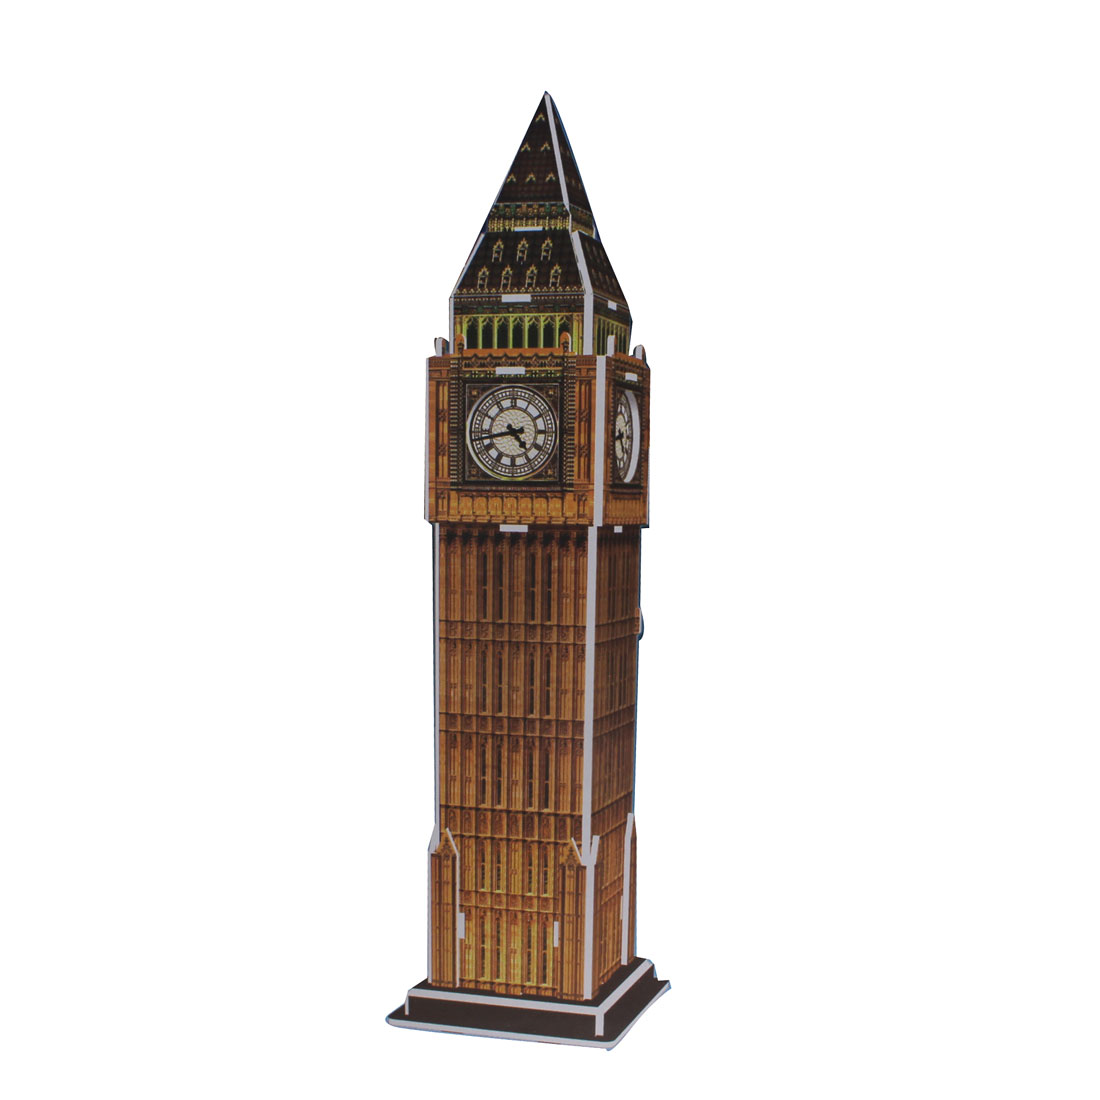 Child 3D Foam Big Ben Designed Assembling Puzzle Toy Light Brown